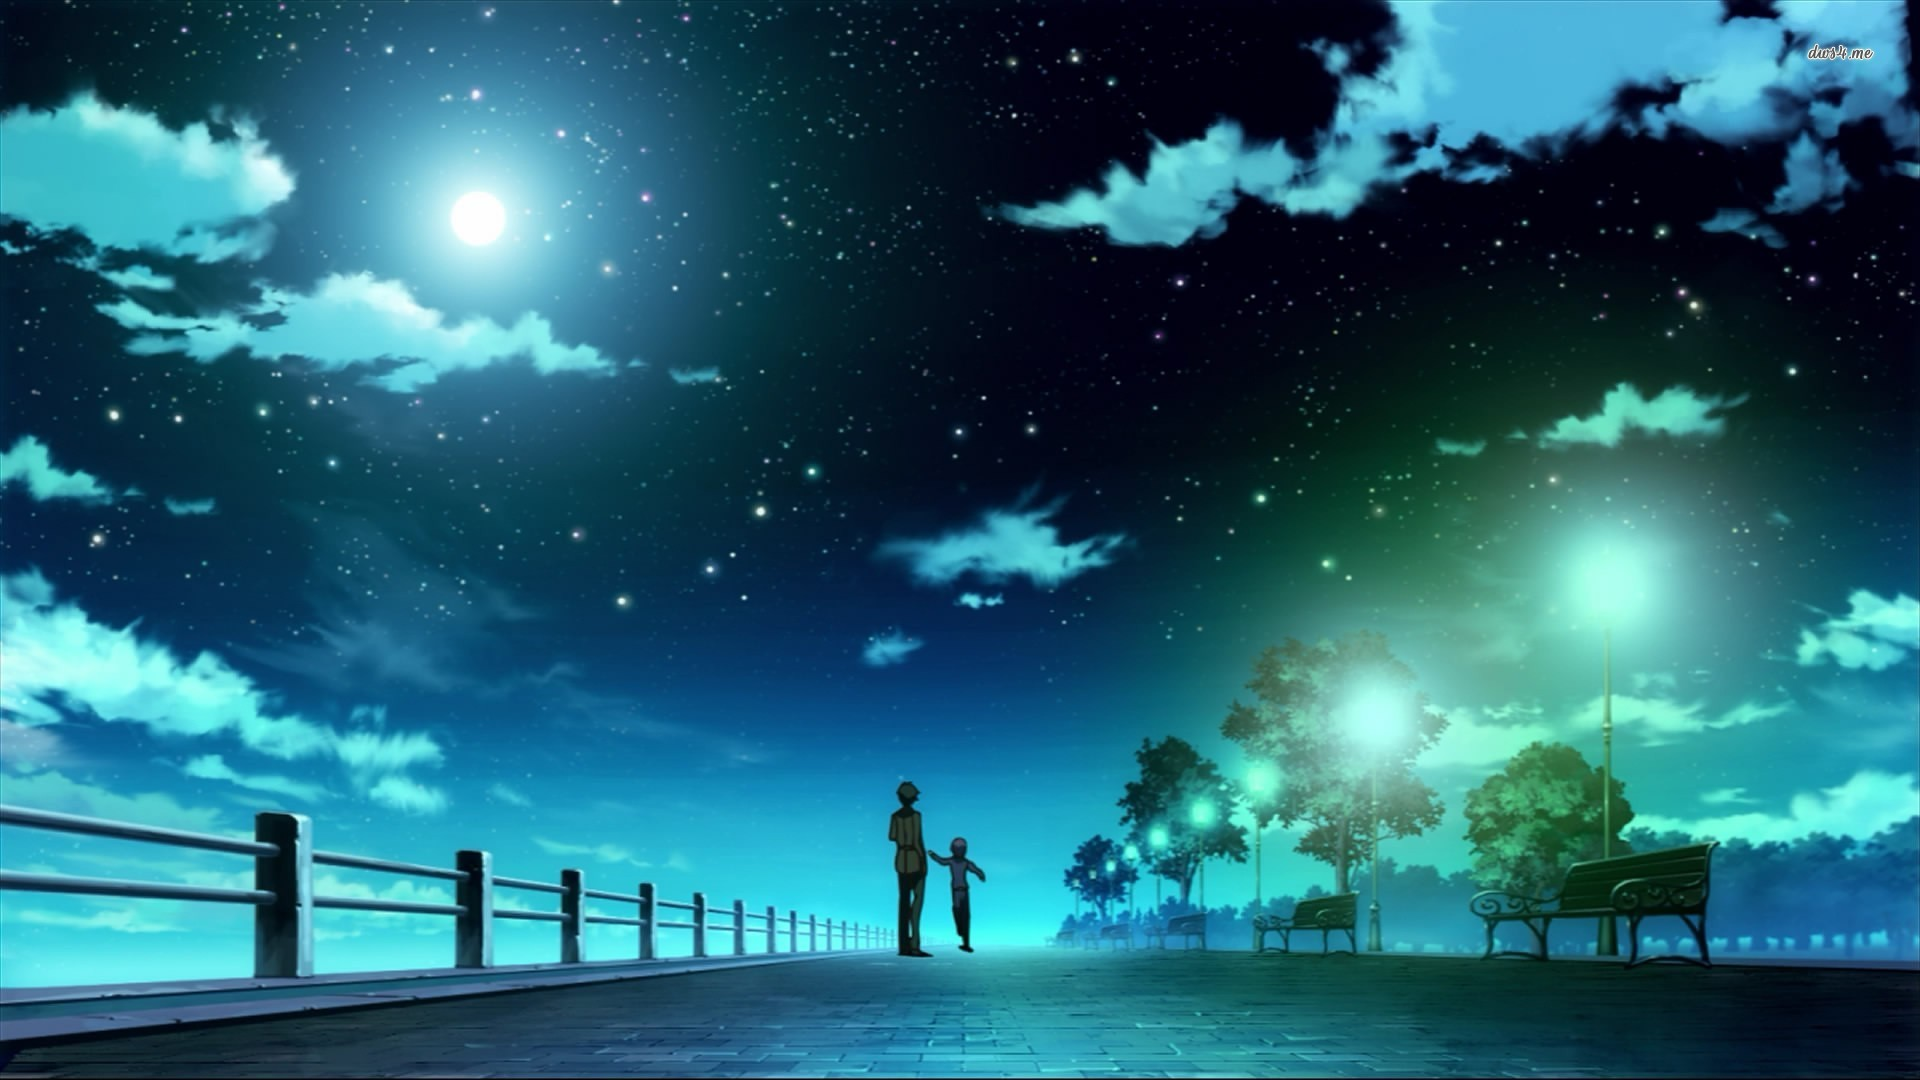 Starry night anime wallpaper